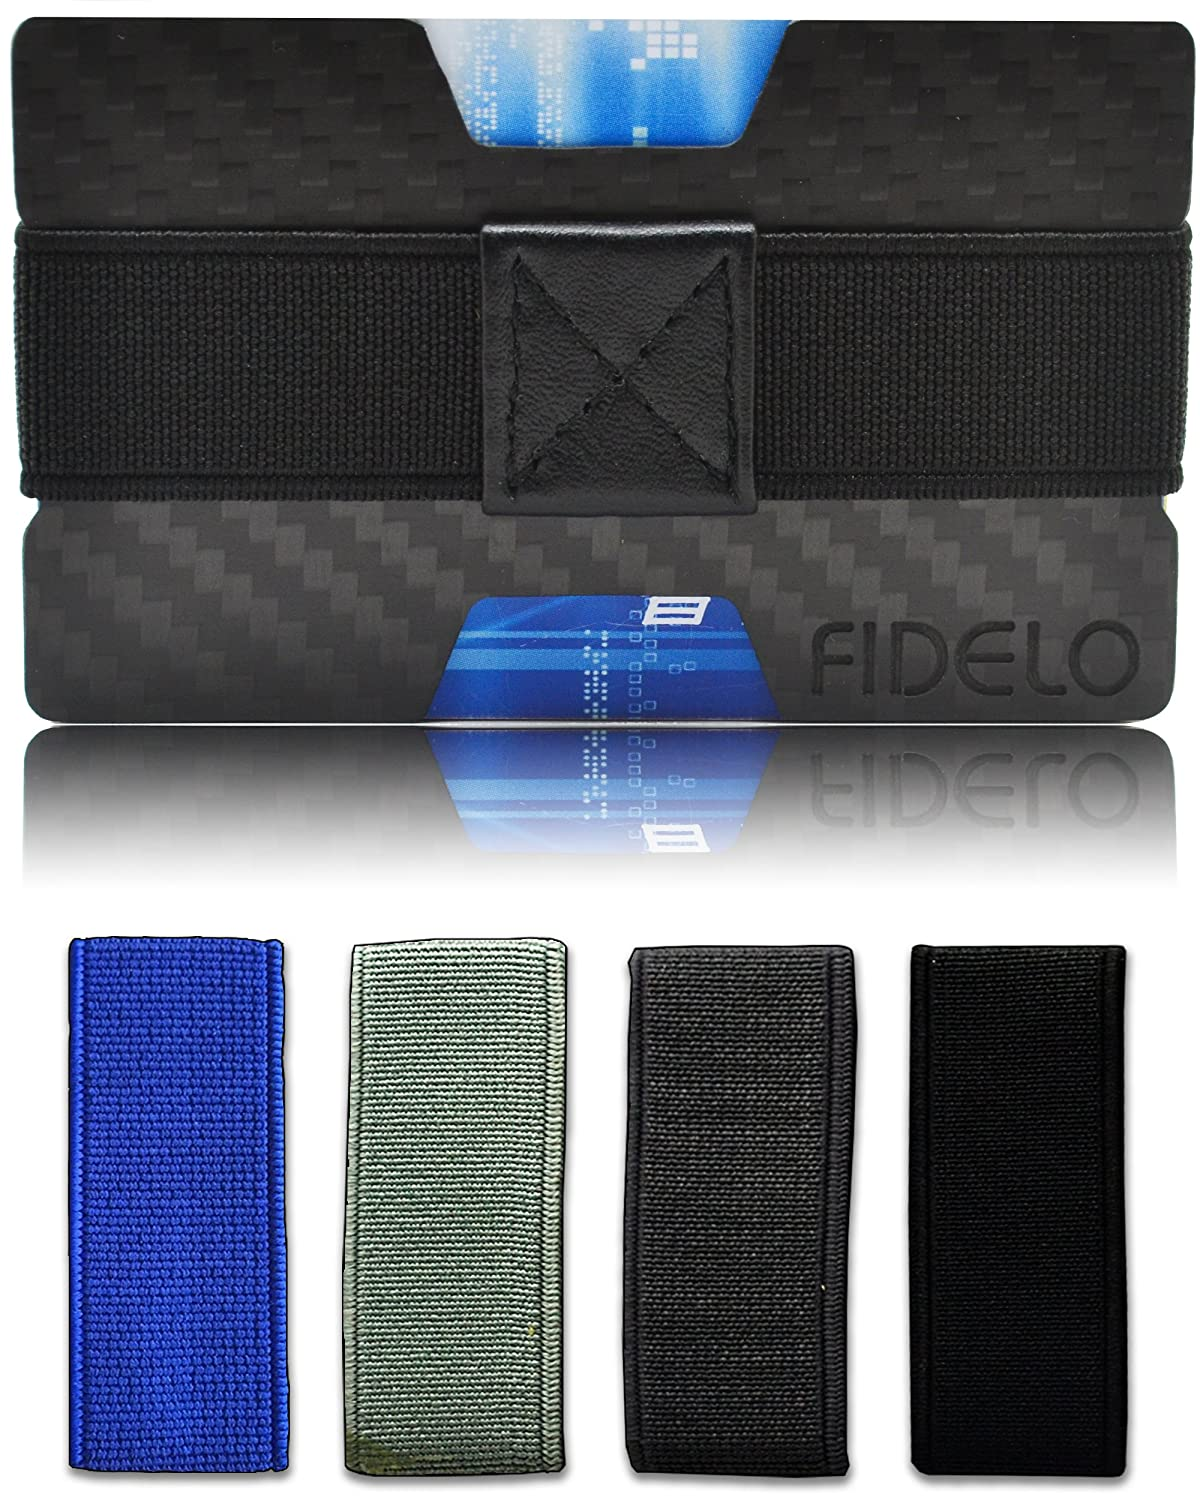 Carbon Fiber Wallet RFID - Small Slim Front Pocket Wallets for Men & Money Clip FIDELO Minimalist X Mens Wallets